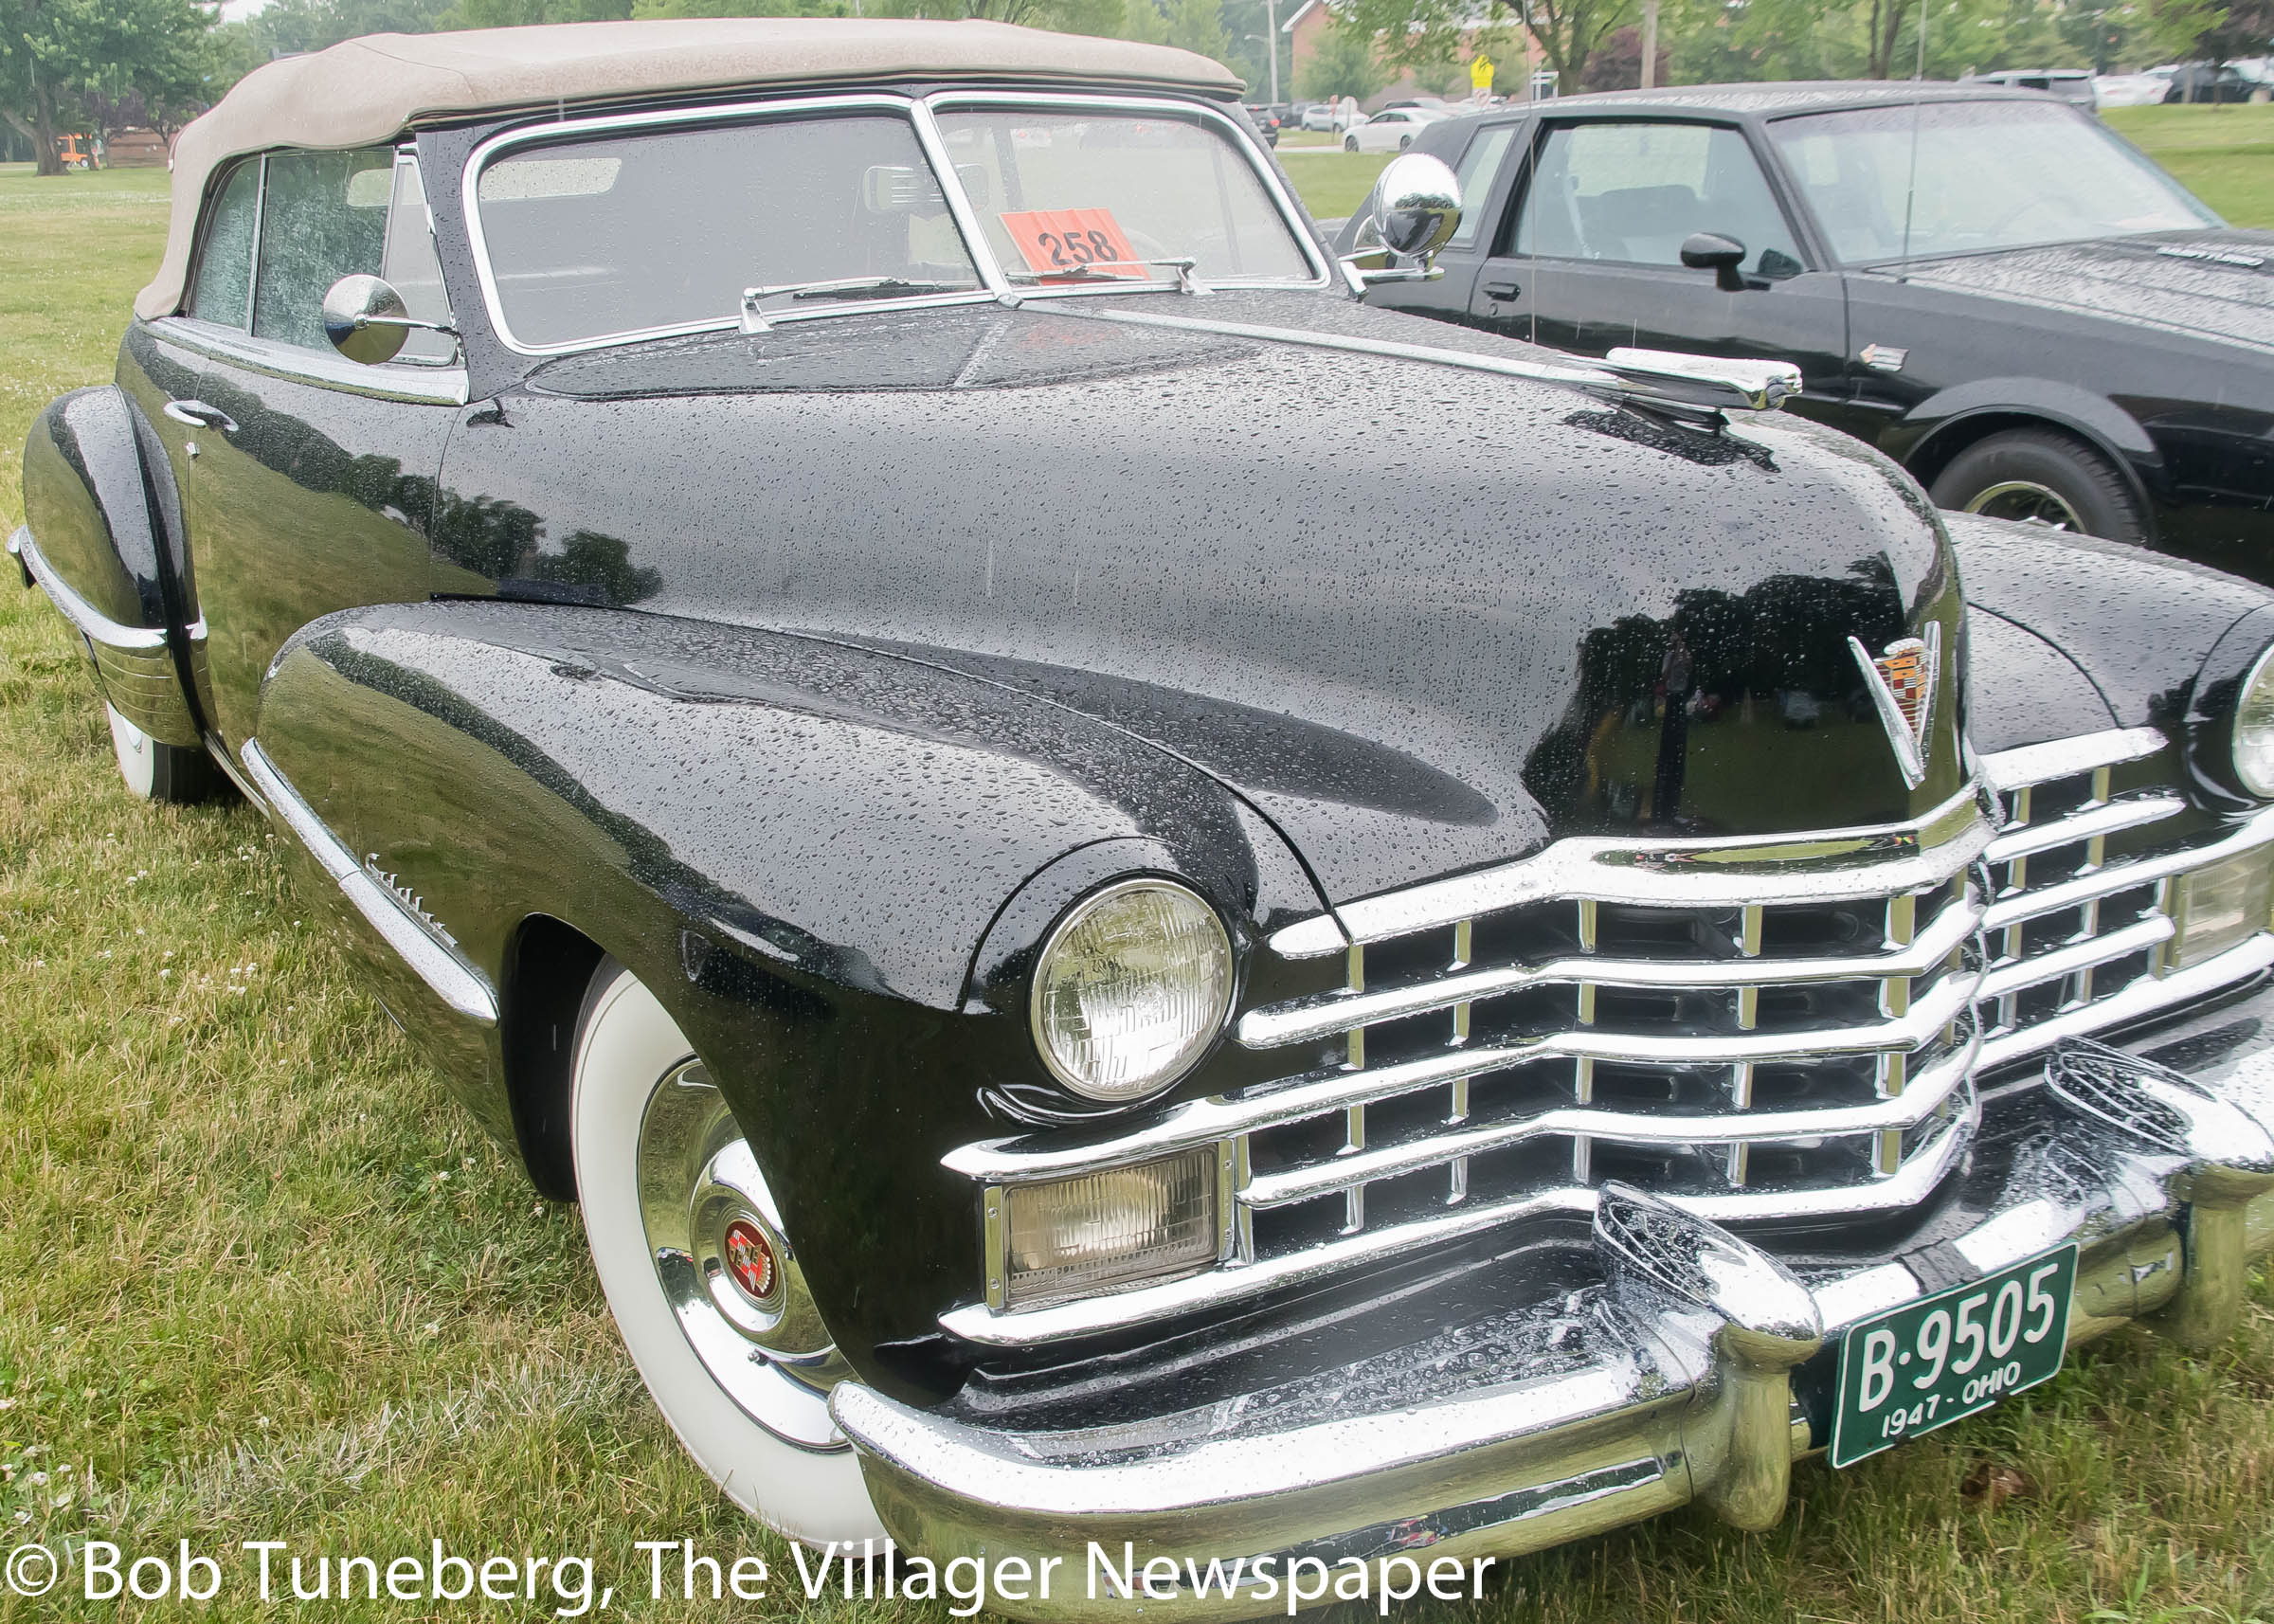 Bay Days Car Show - The Villager Newspaper Online